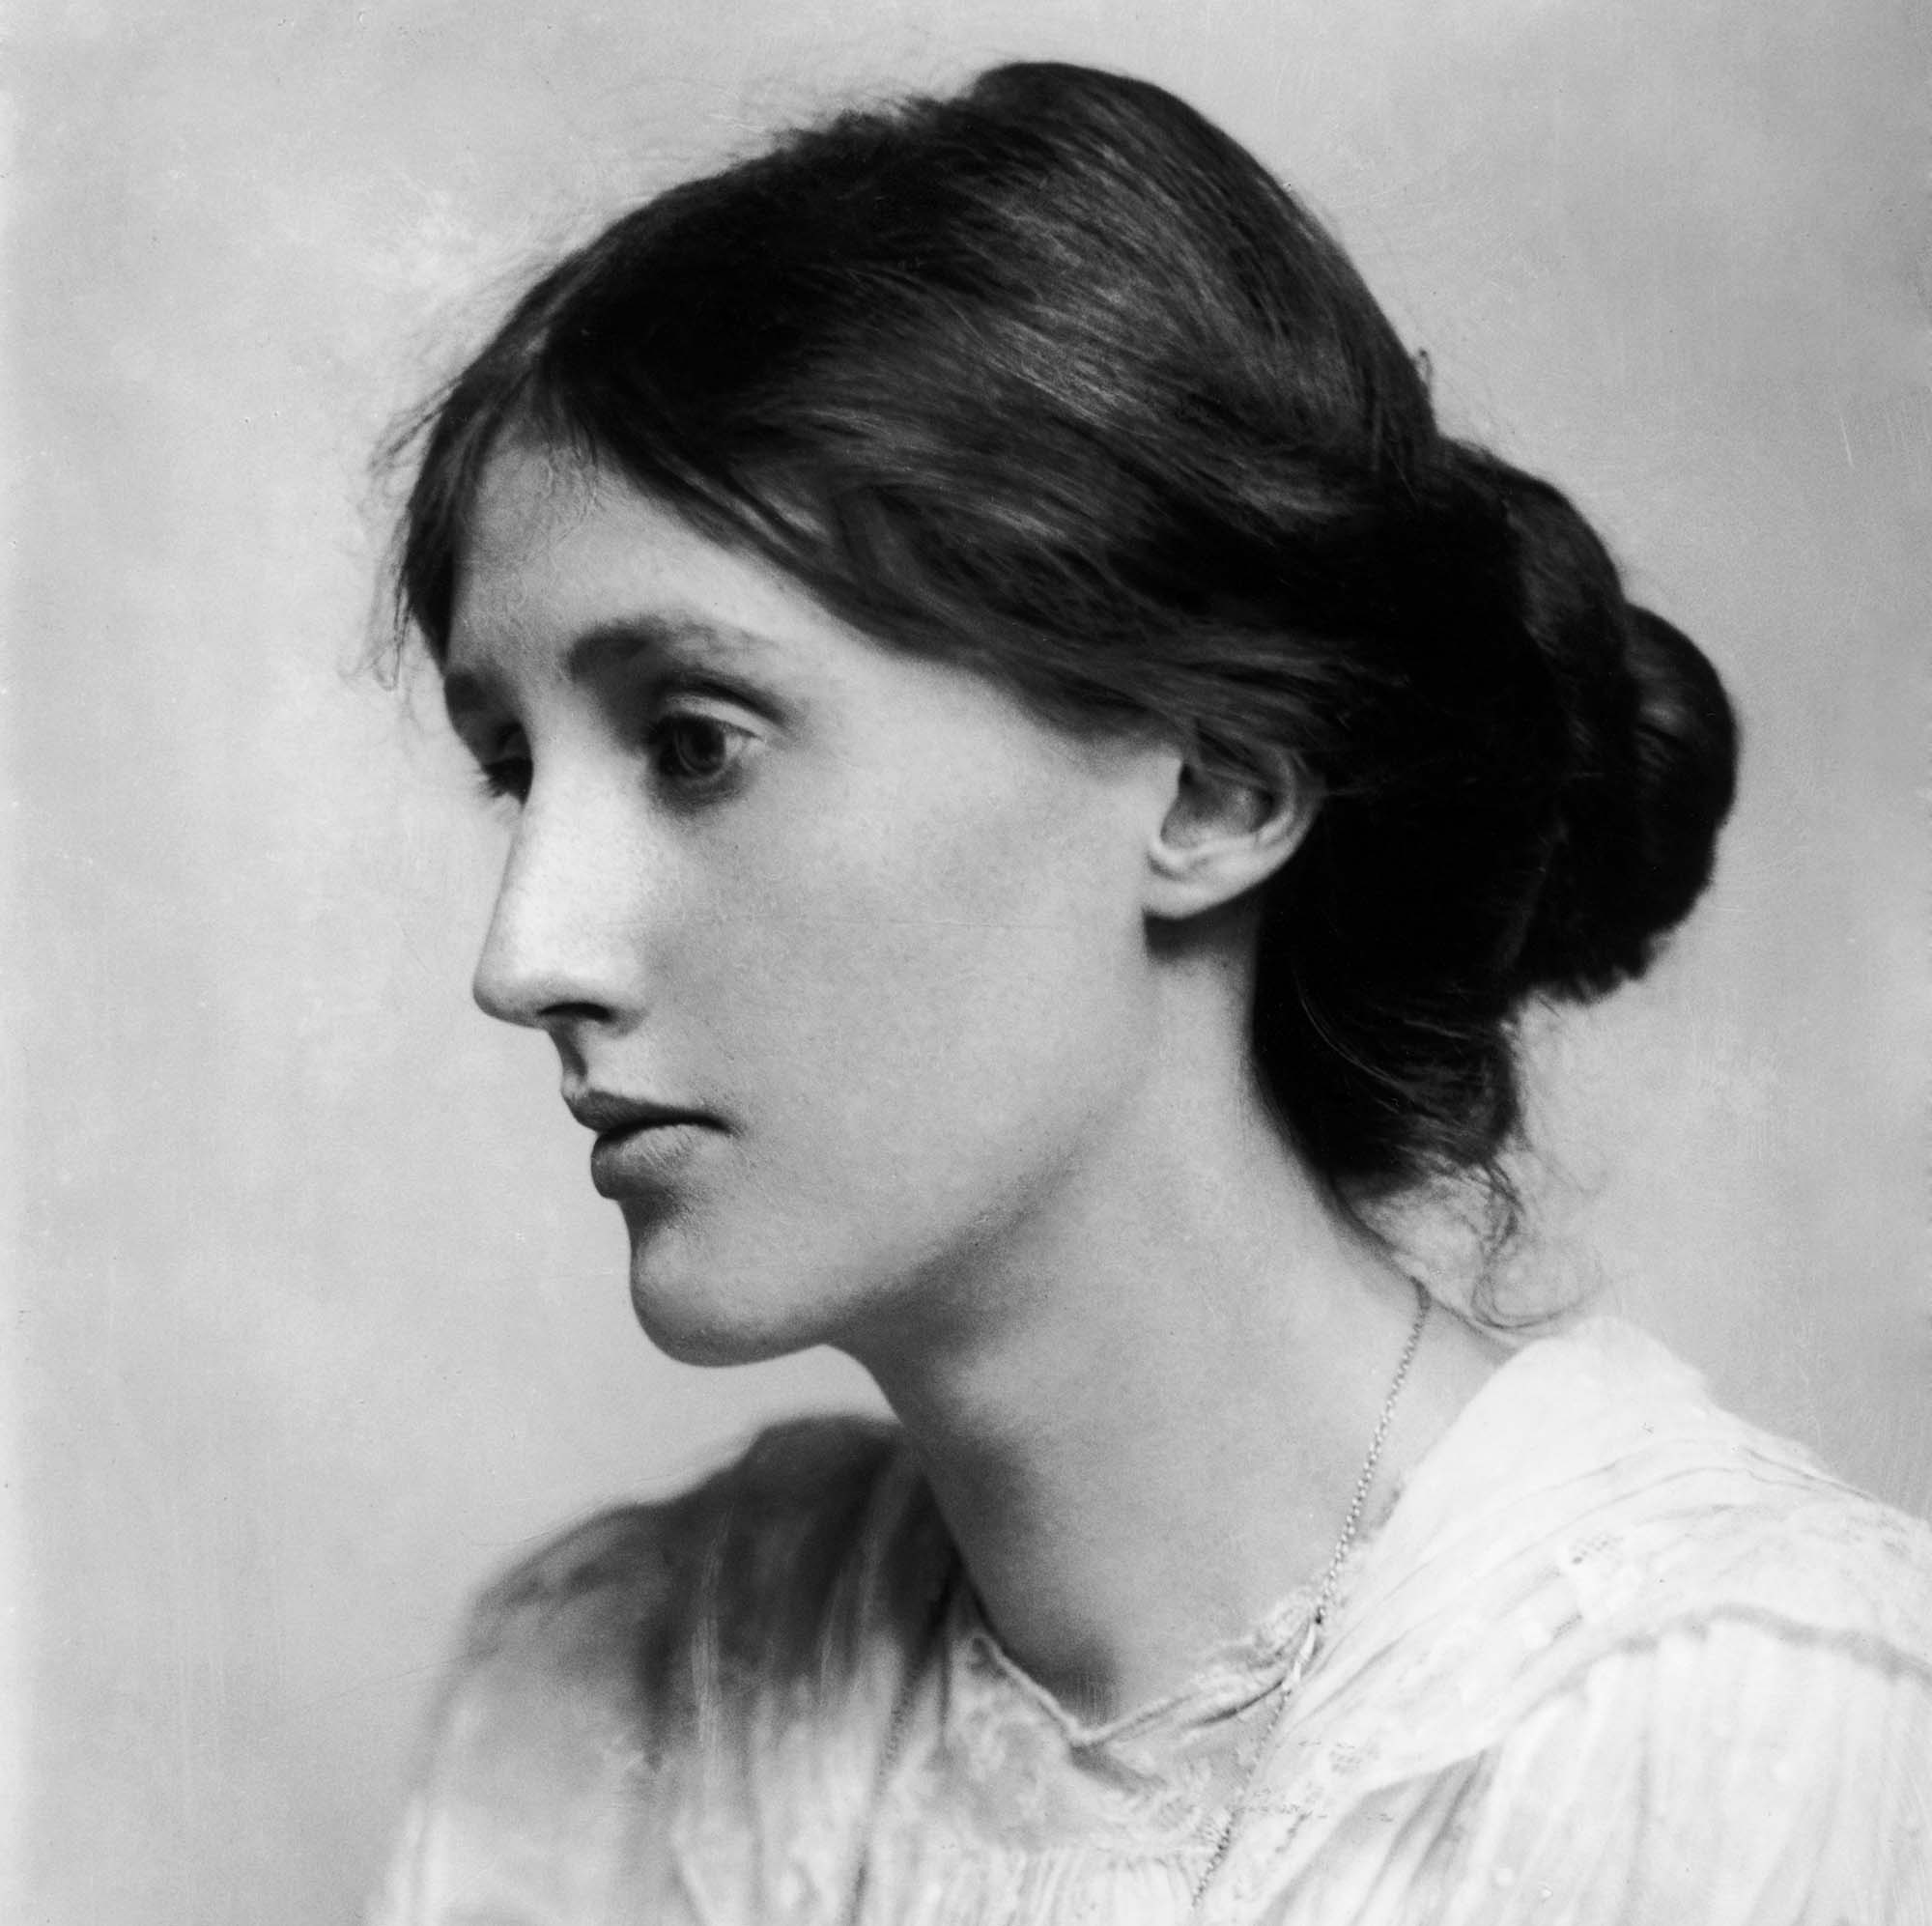 Virginia Woolf 1902 | Photo by George C. Beresford/Hulton Archive/Getty Images (public domain)